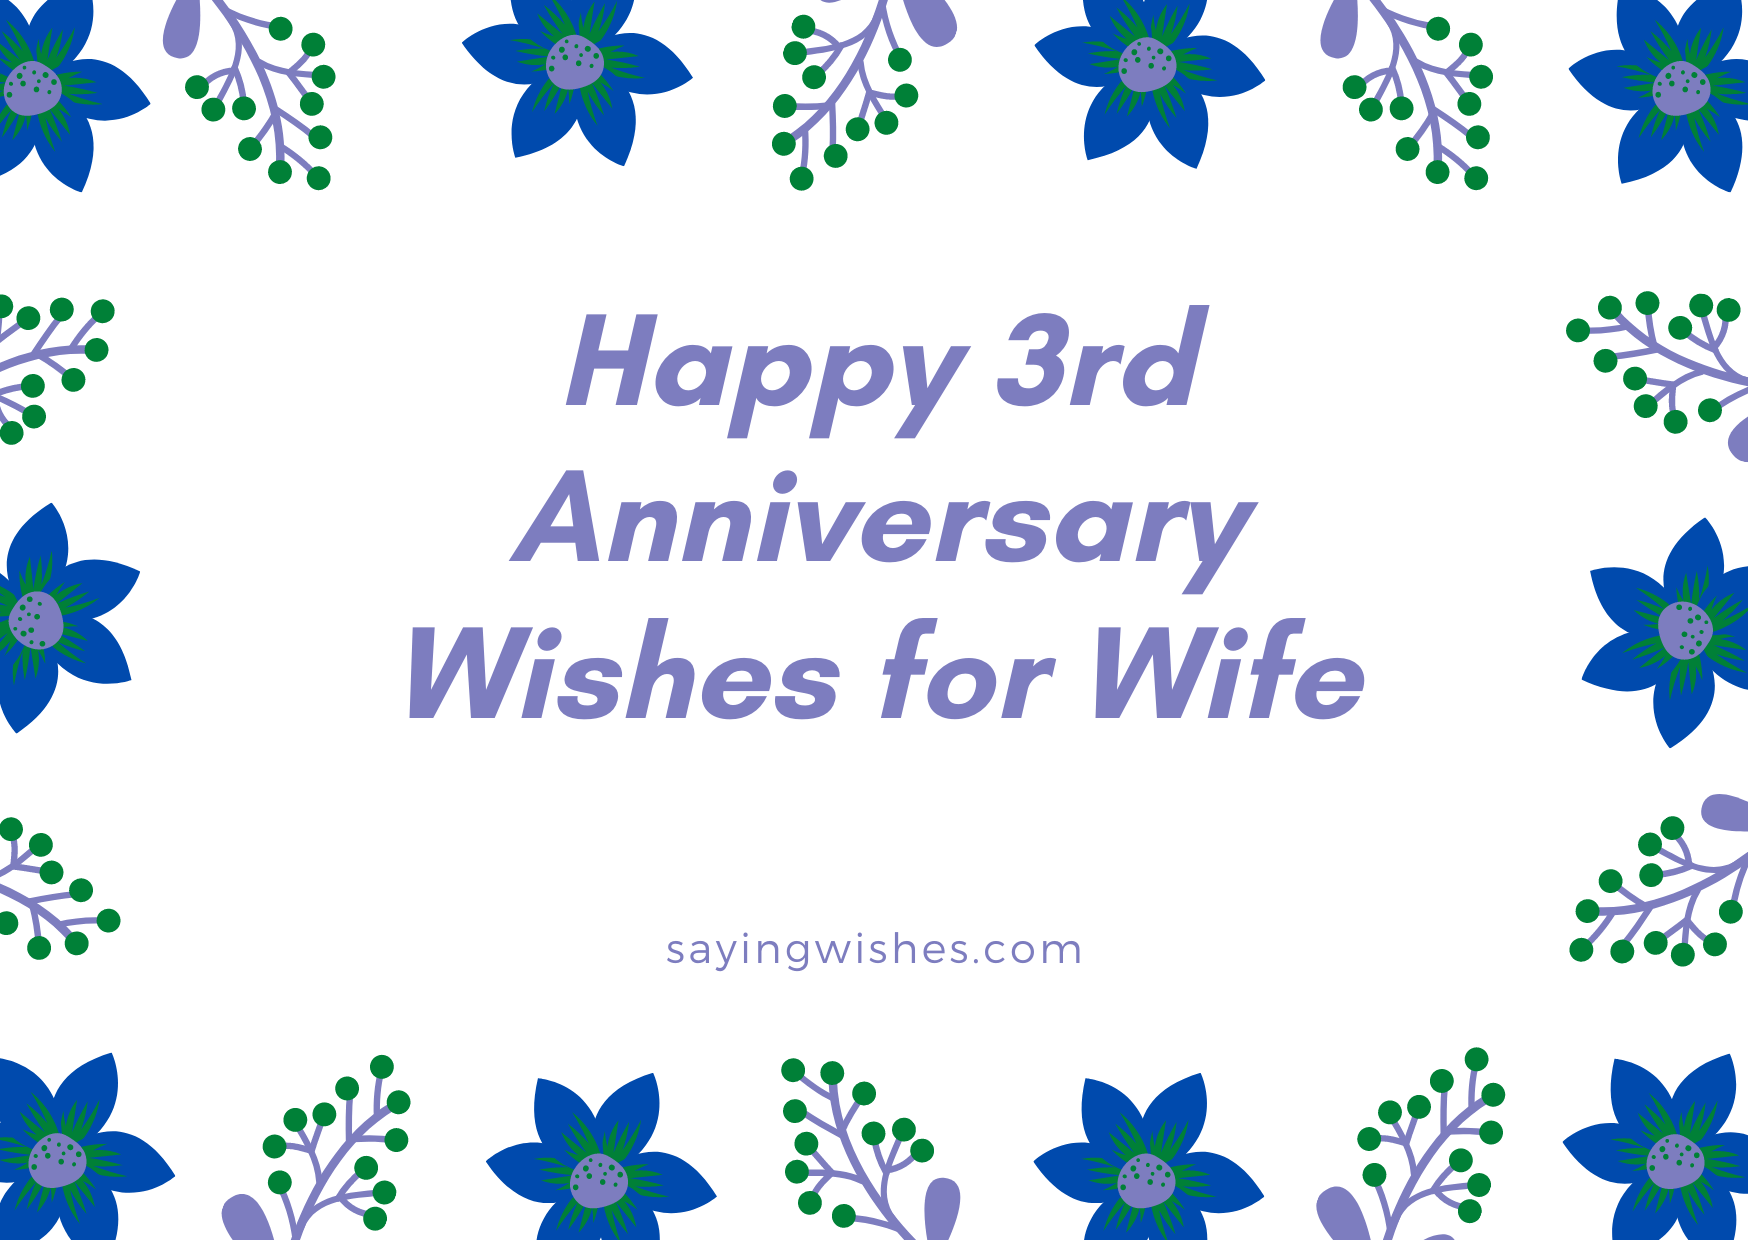 happy 3rd anniversary wishes for wife